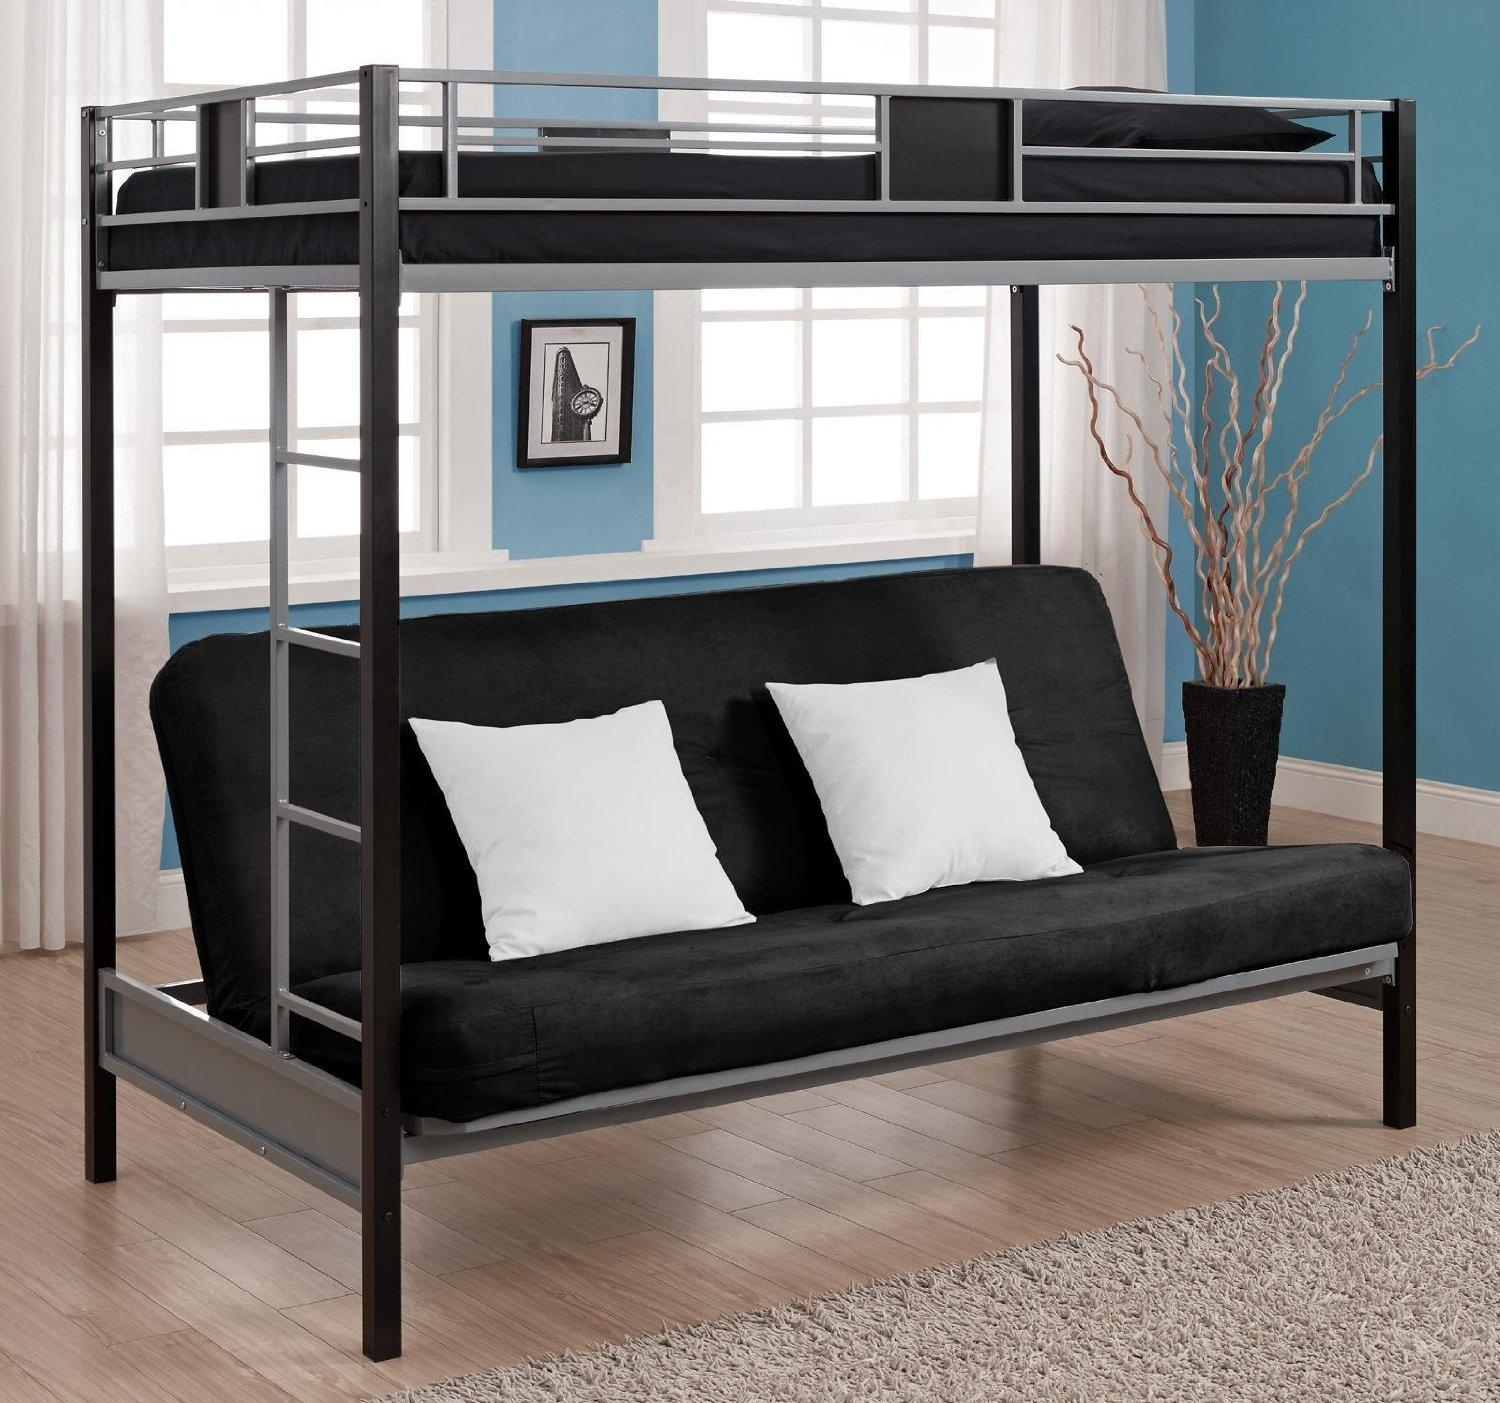 Sofas Center : Loft With Sofa Bedroom White Wooden Bunk Beds Desk With Regard To Sofa Bunk Beds (Image 19 of 20)